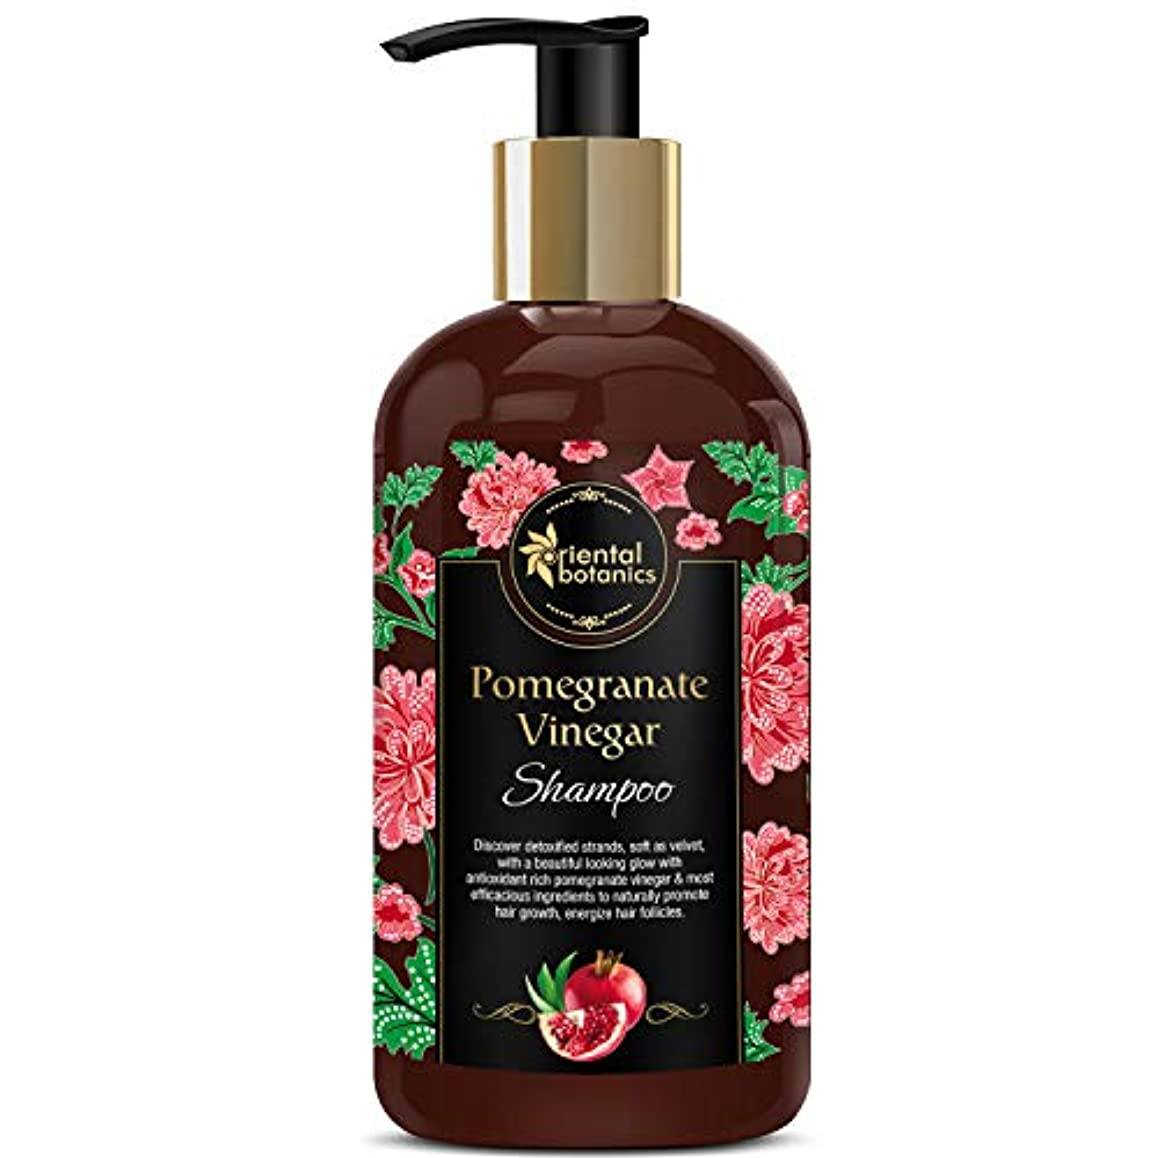 おびえたを必要としていますチーズOriental Botanics Pomegranate Vinegar Shampoo, 300ml - For Healthy, Strong Hair with Antioxidant Boost & Moroccan...